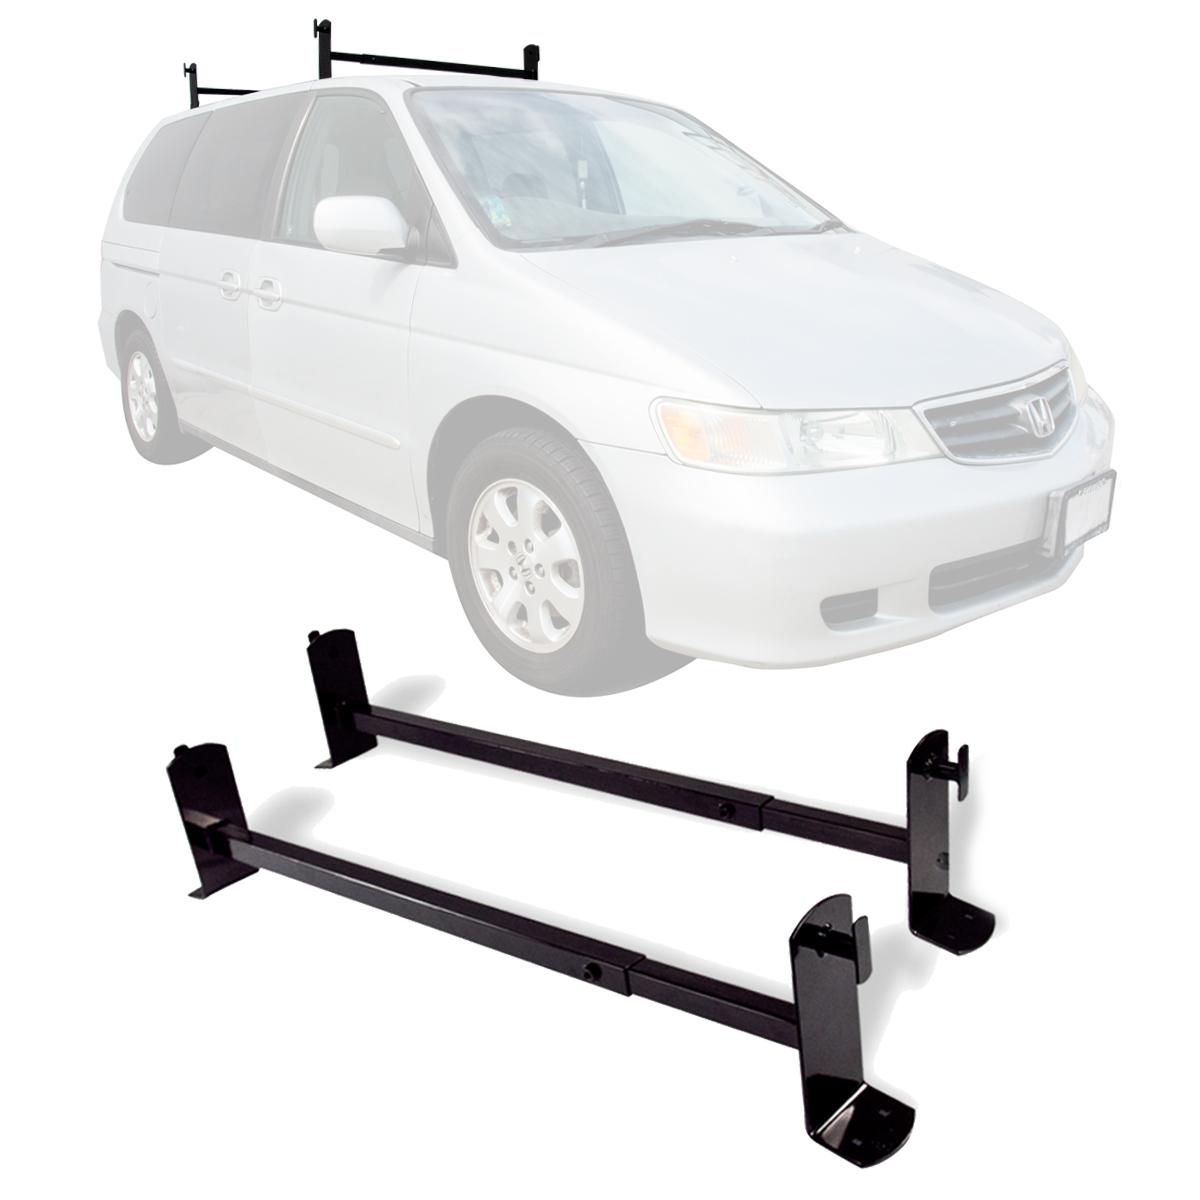 rack up kayak pick boat lumber tl shop suv hitch canoe extender ladder truck bed for